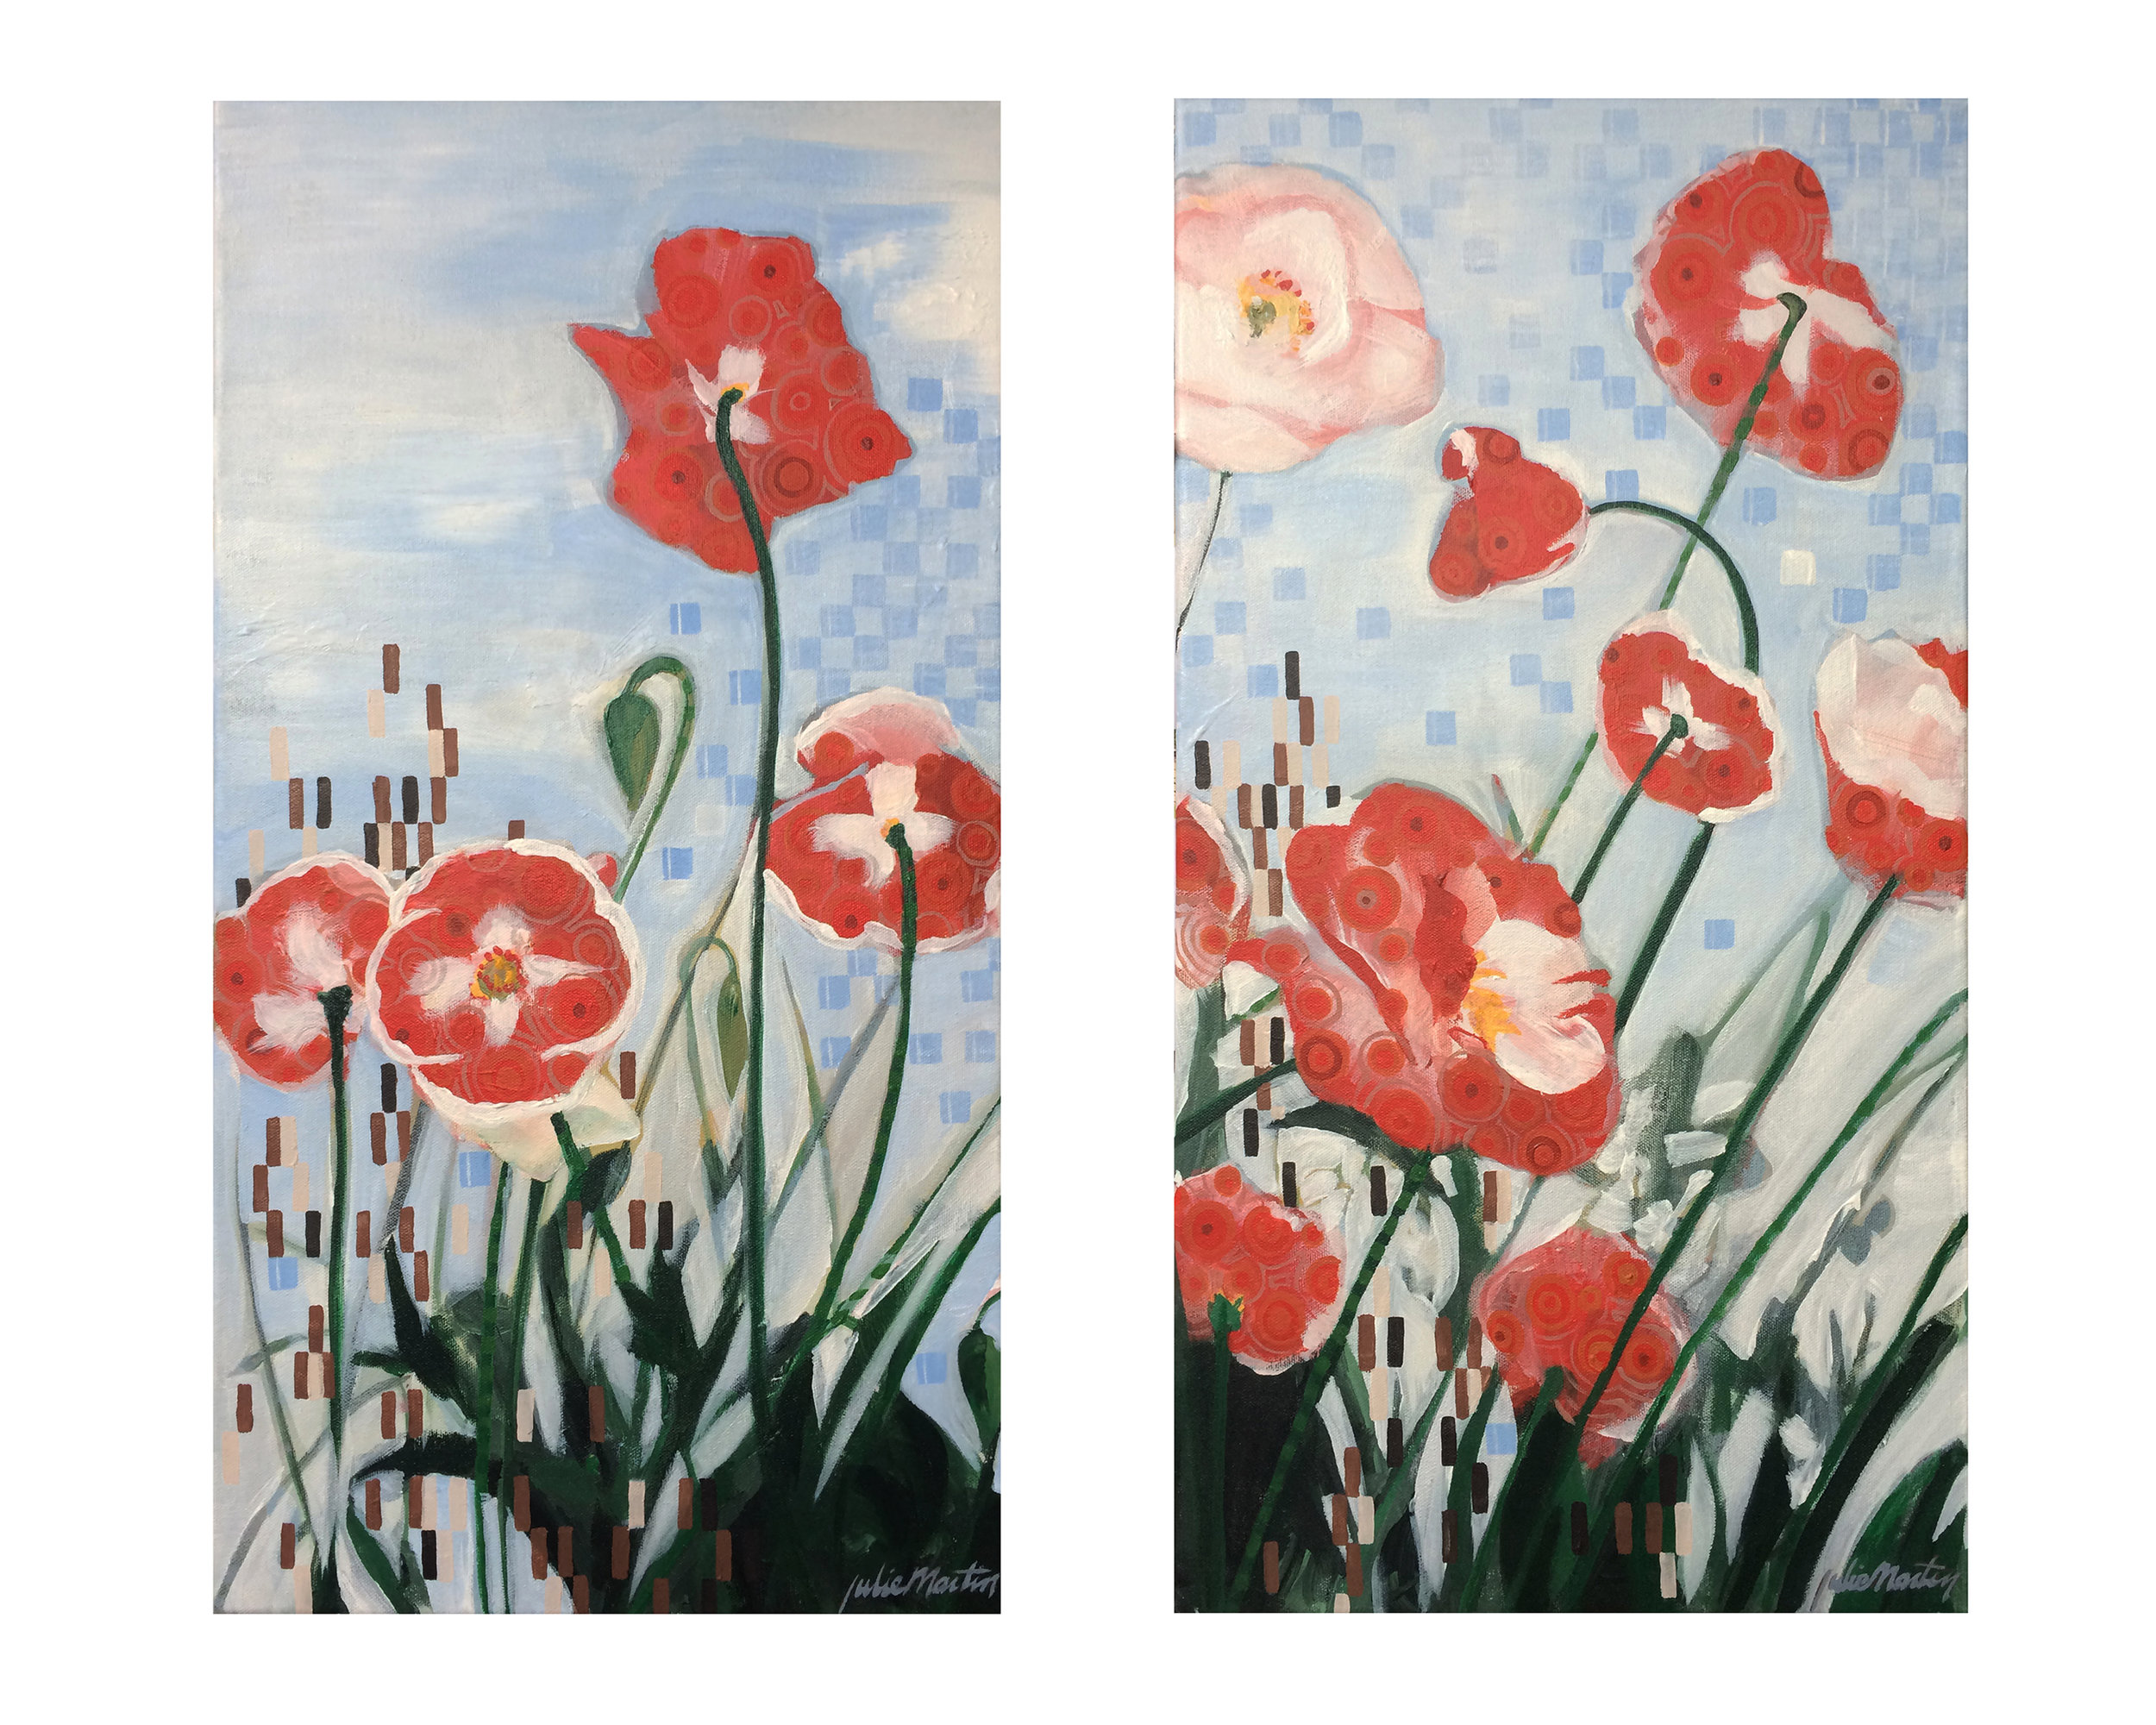 "Florals for a change • Acrylic on canvas • PoppyPattern1 - 24"" x 13"" • PoppyPattern2 - 24"" x 13"""